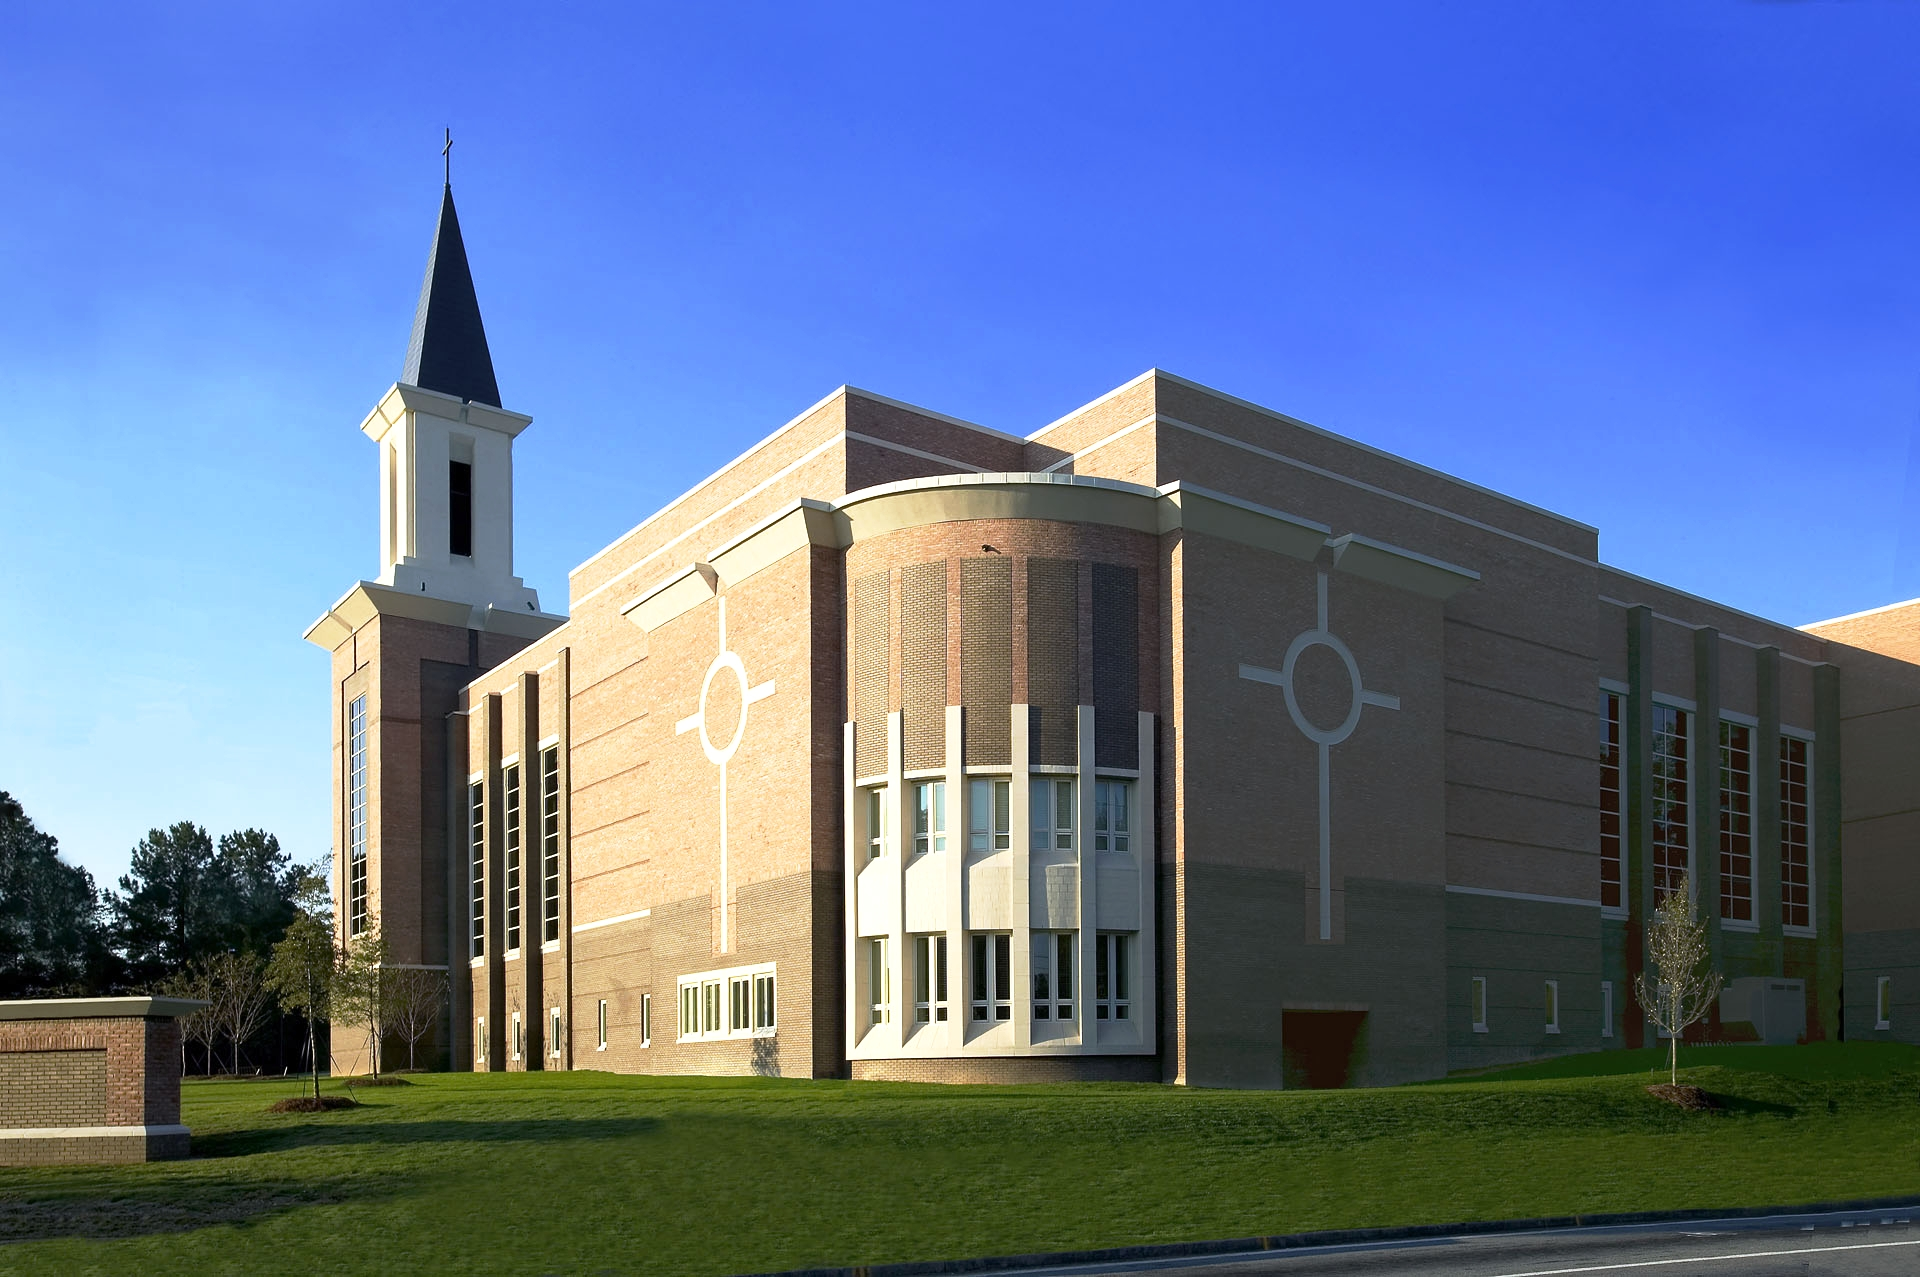 Mount Paran Church - Atlanta, GAAstro installed and maintained Access Control and CCTV systems have made this house of worship's security posture a known standard for other churches to follow.